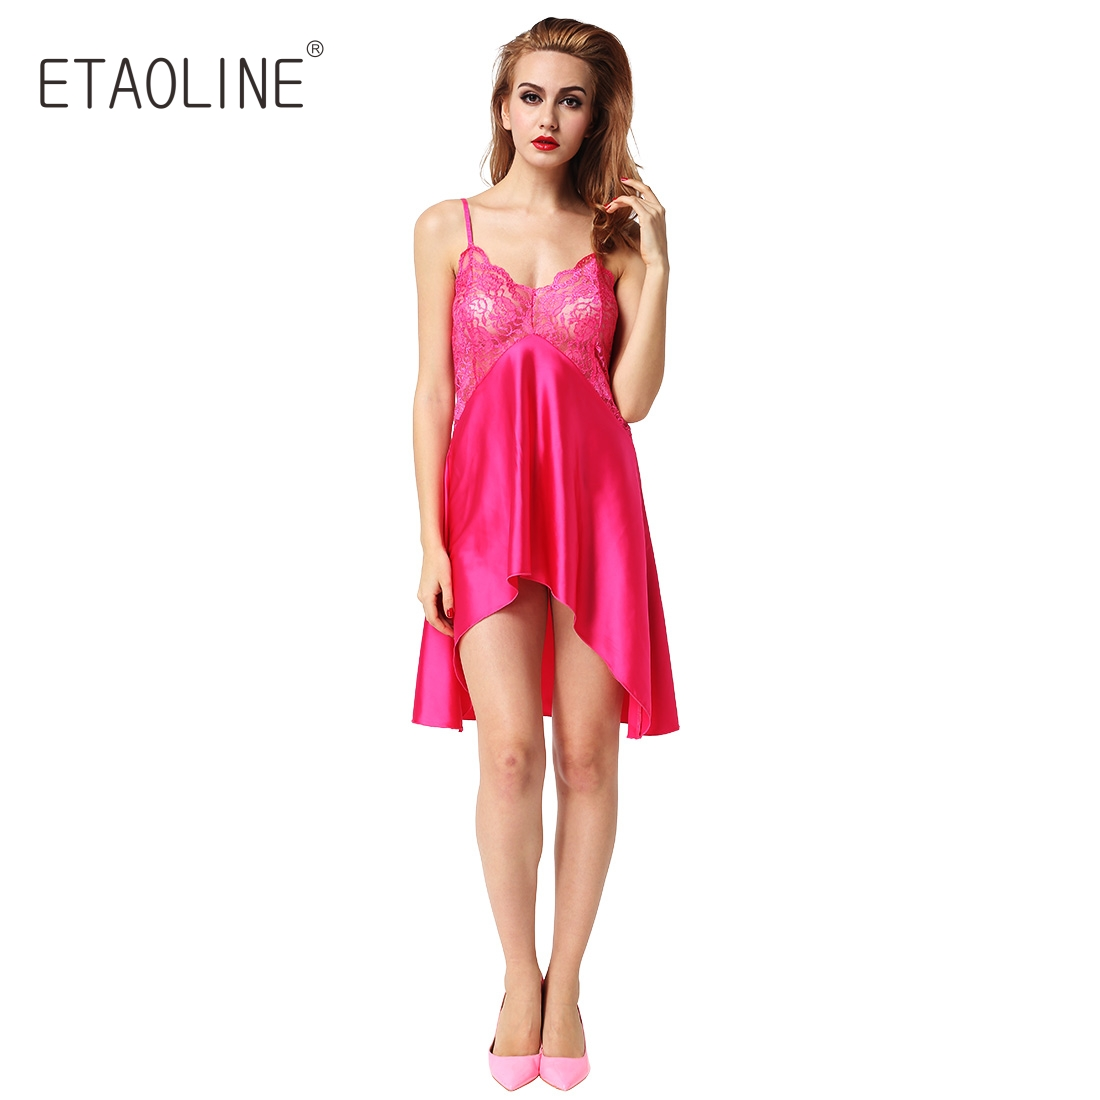 ETAOLINE New Sexy Nightwear Sleepwears Womens Backless Lingerie Dresses Lace Nightgown Night Dress 6 Colors R35